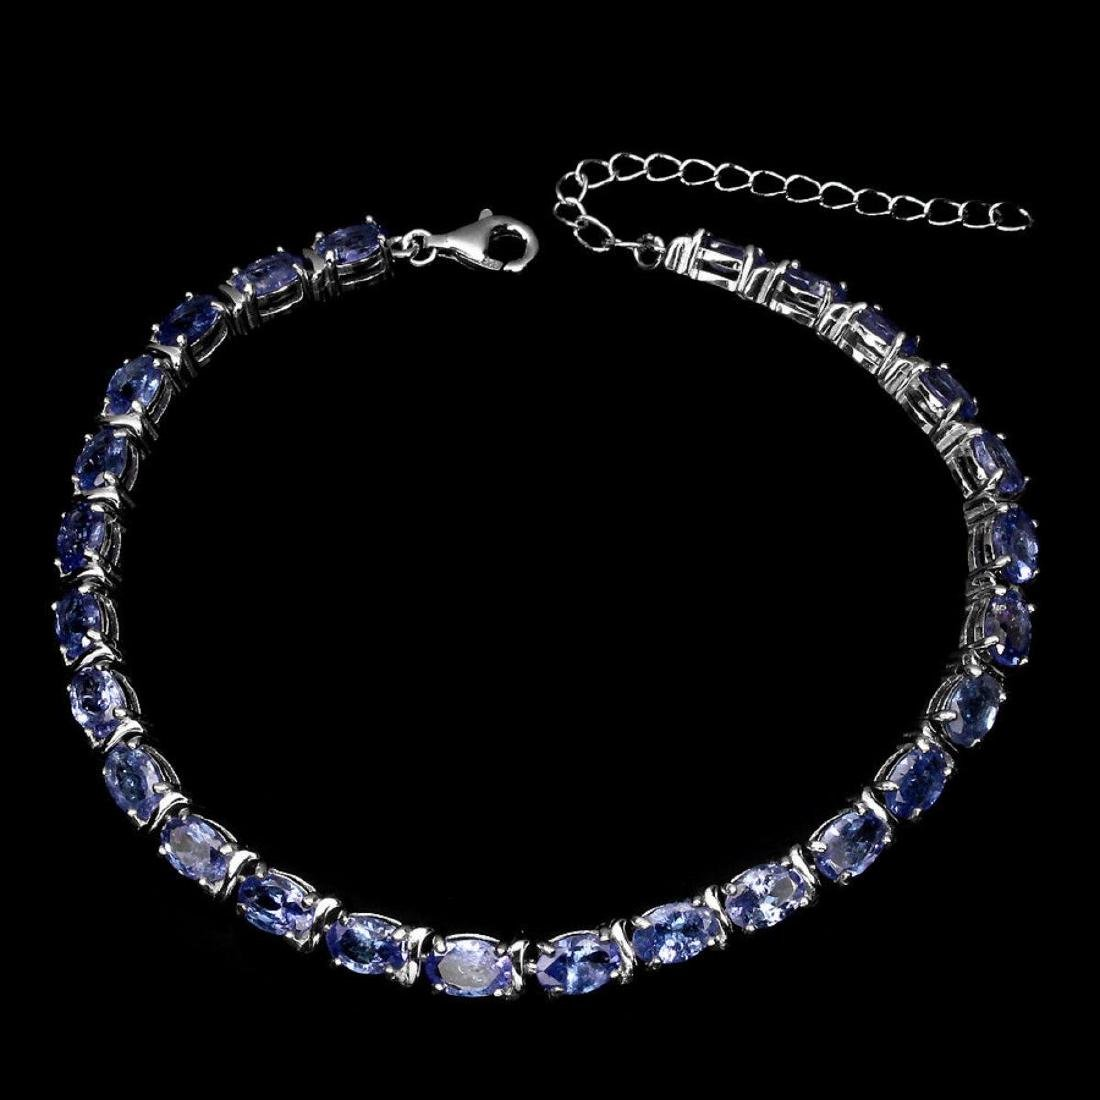 Natural Oval 6x4mm Blue Violet Tanzanite Bracelet - 2